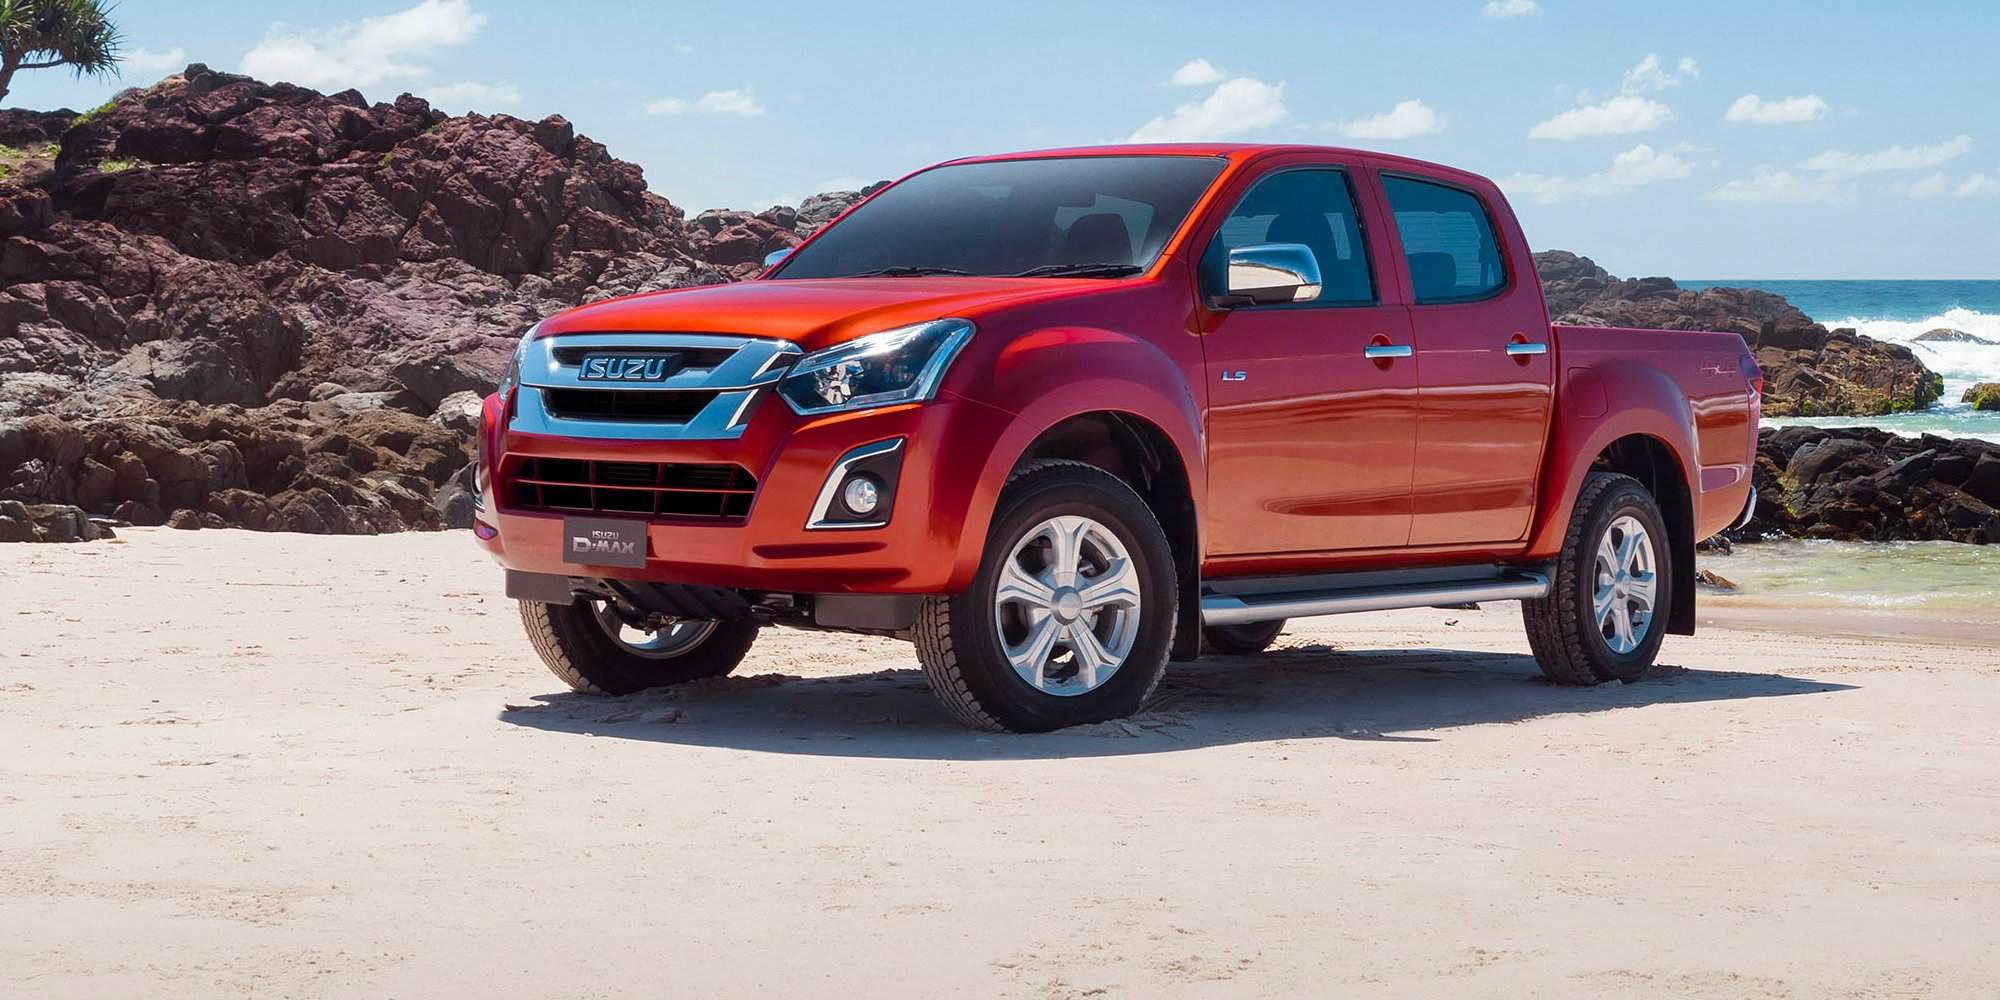 2017 Isuzu D-MAX pricing and specs: Updated engine and ...